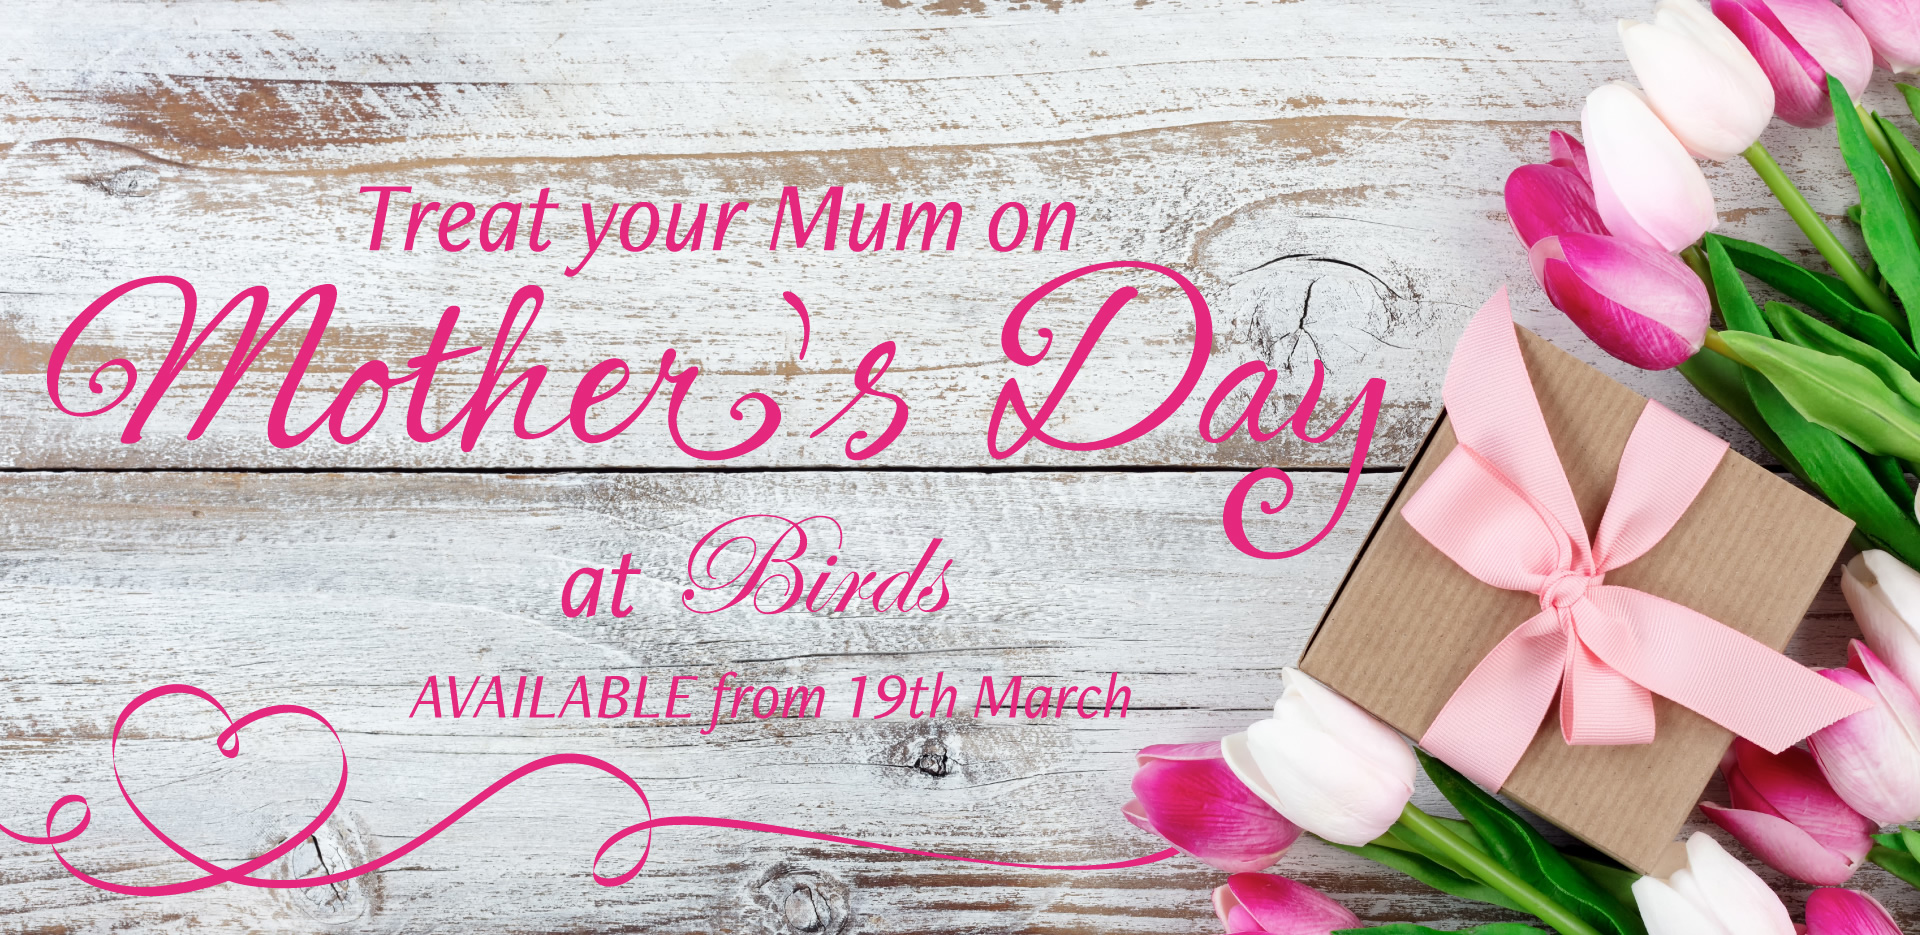 Treat your Mum on Mother's Day at Birds - Available from 19th March